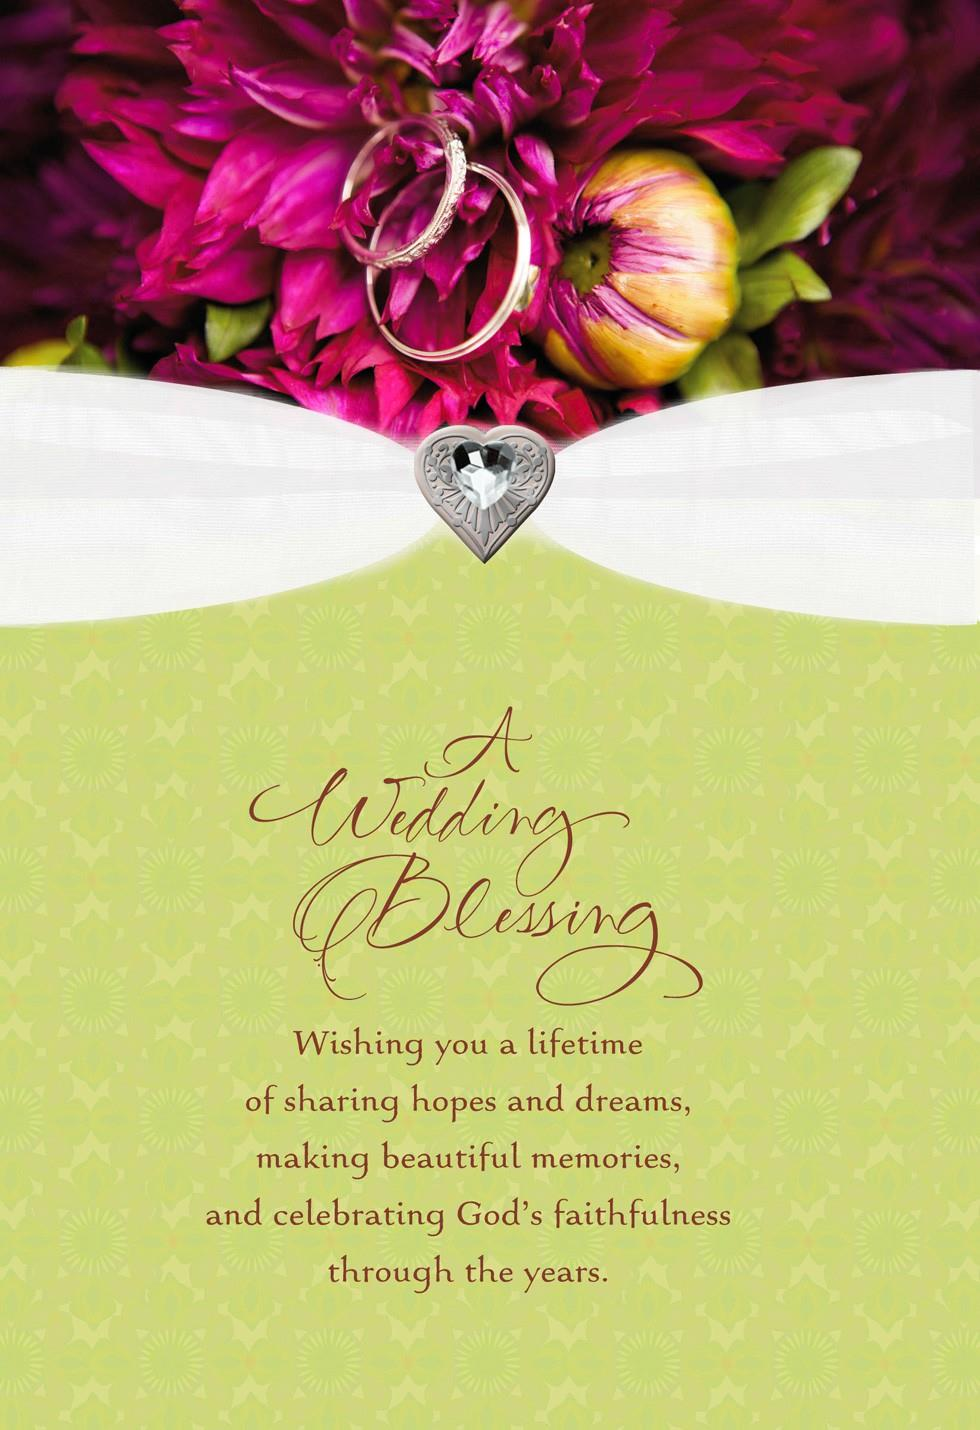 Wedding Blessing Religious Card